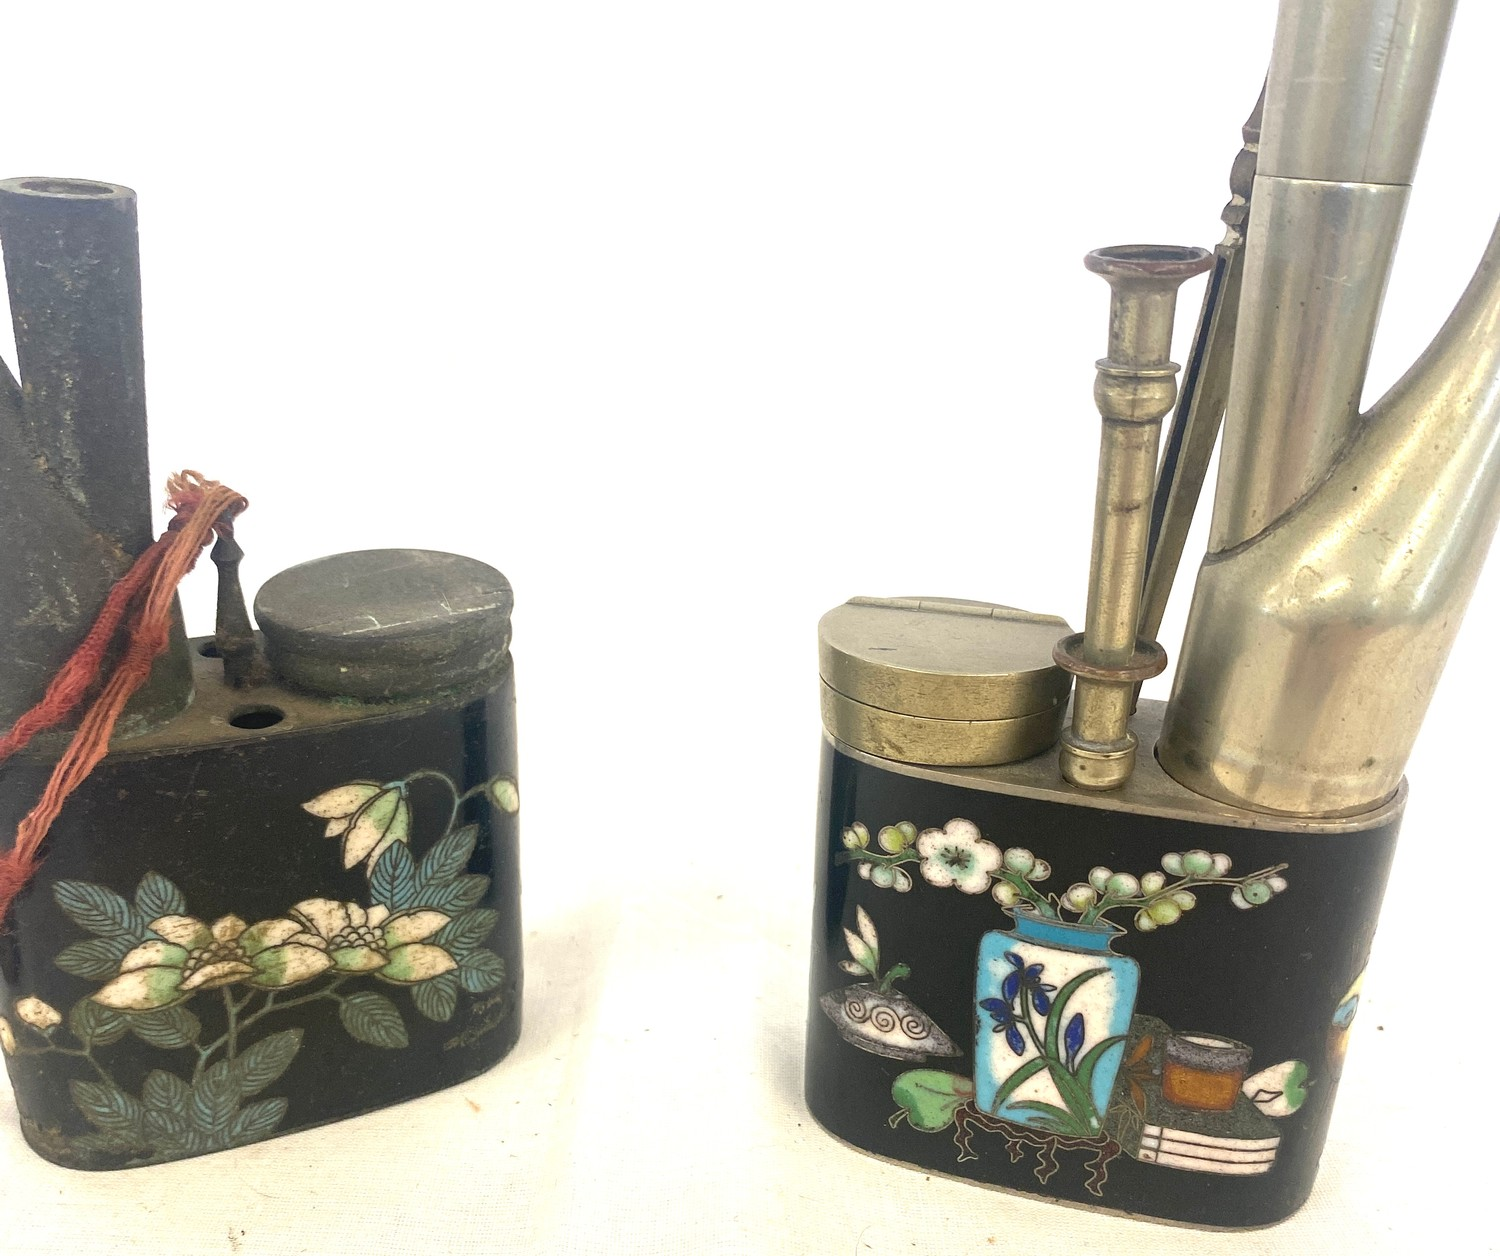 Two antique Chinese cloisonné opium pipes - Image 2 of 2